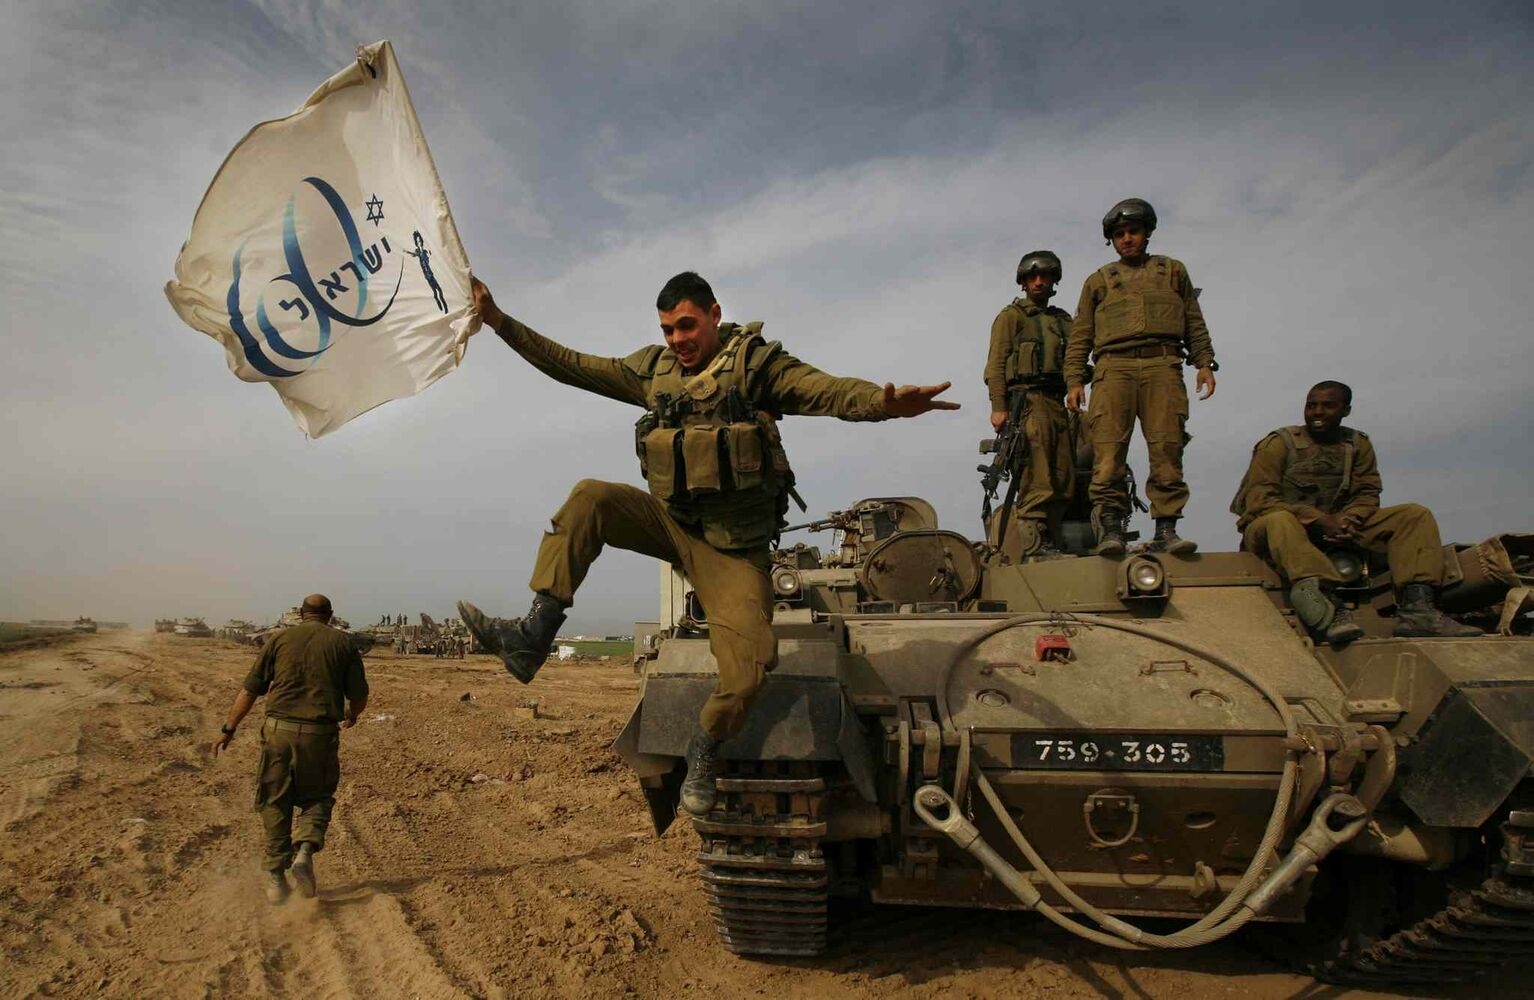 Friday, Jan. 16, 2009: An Israeli soldier jumps off an armored vehicle carrying a flag of Israel's 60th anniversary as he celebrates with his unit their return from the Gaza Strip on the Israeli side of the border.  (Anja Niedringhaus / The Associated Press)